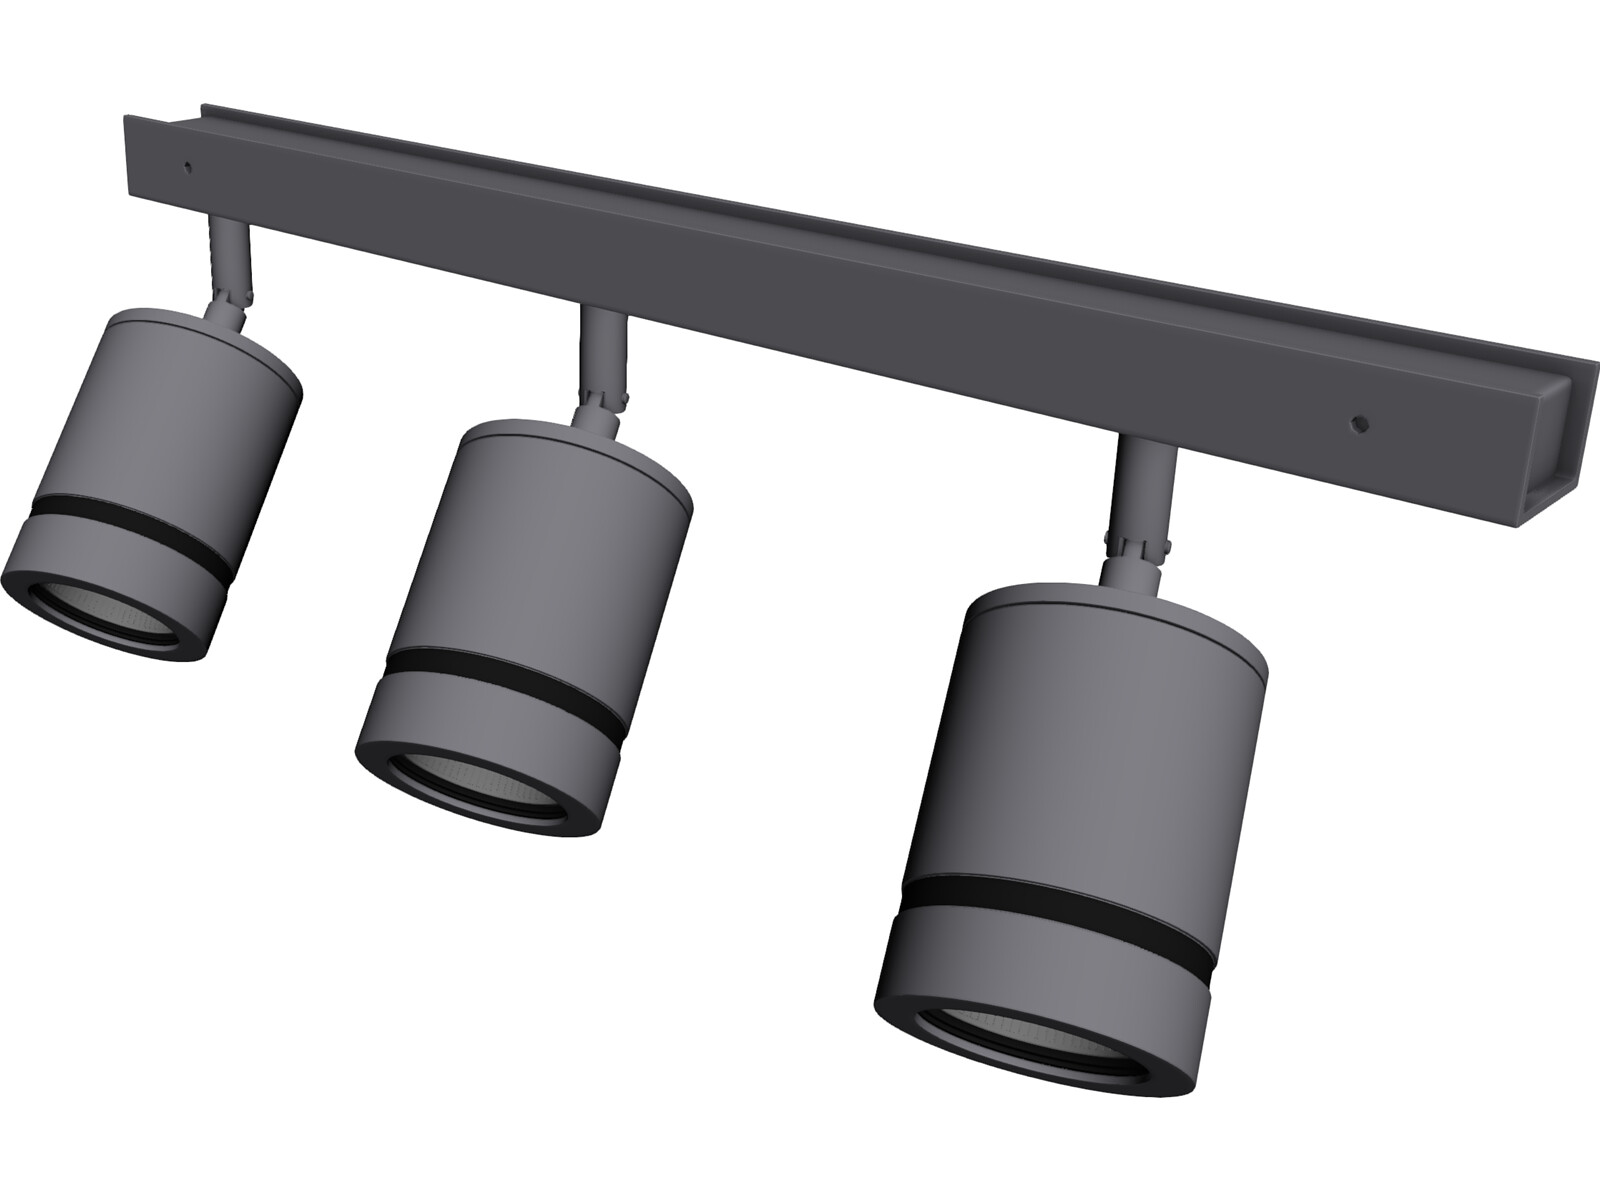 Lamps on Railing 3D Model